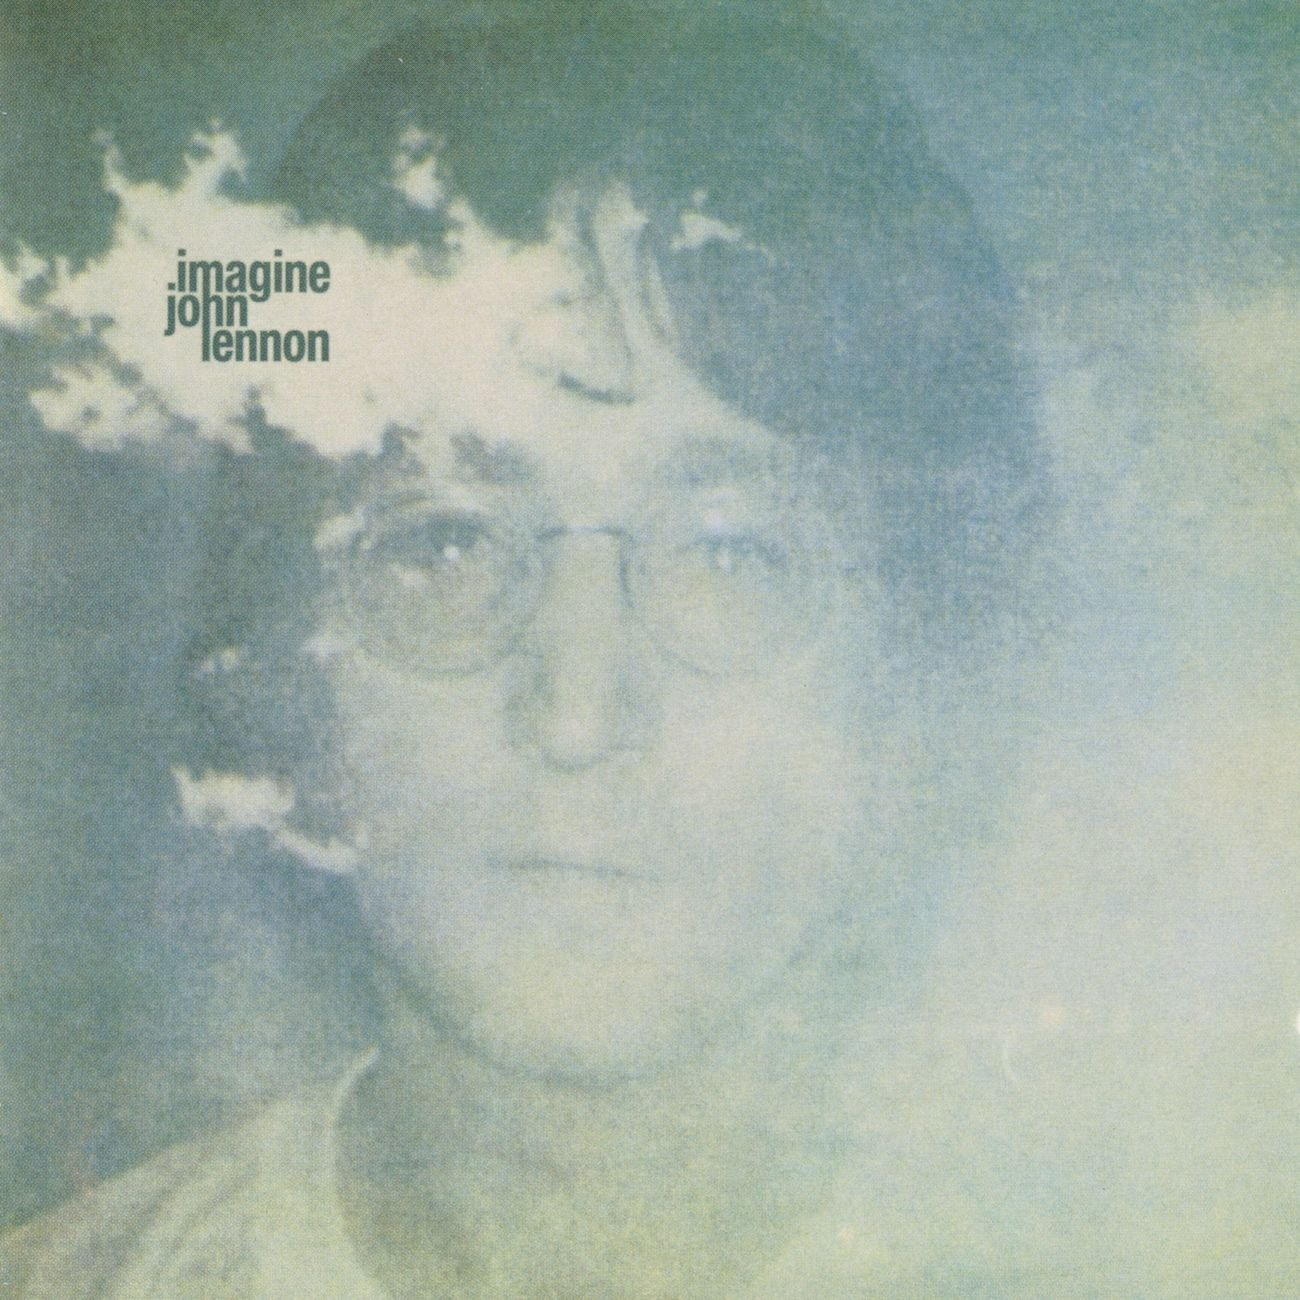 John Lennon. Imagine. s/h early pressing from 1971